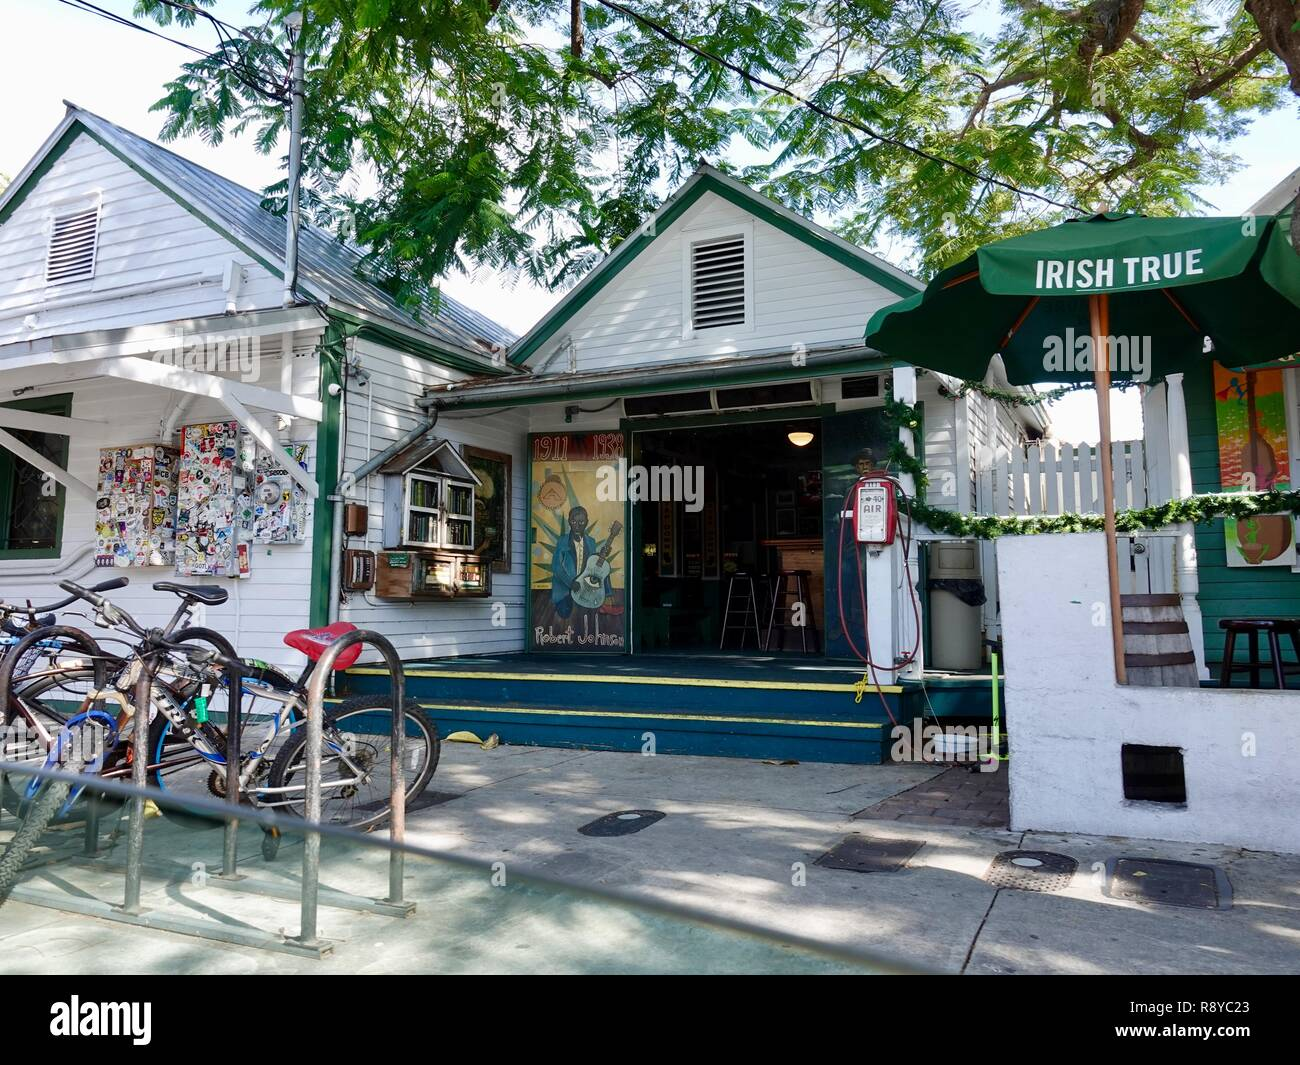 Shady sidewalk view of classic Key West, Florida buildings at Green Parrot Bar on Whitehead Street, with mural tribute to Robert Johnson. Stock Photo